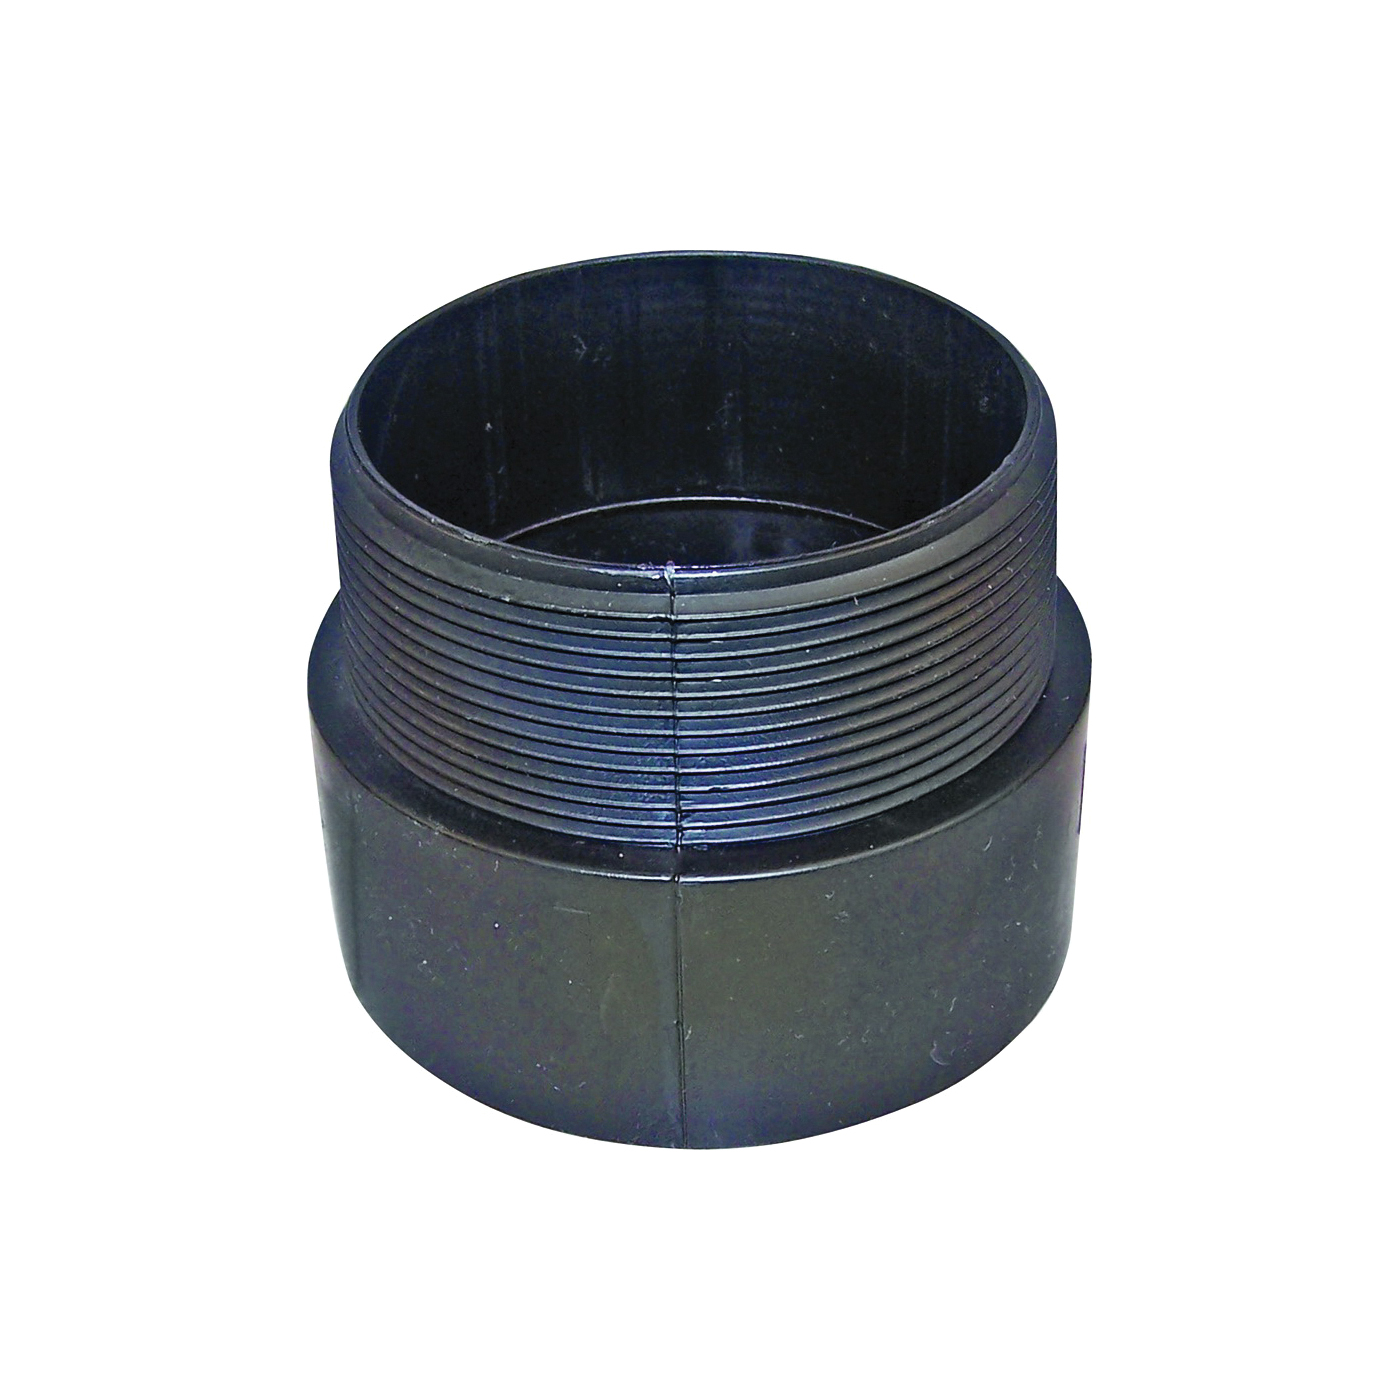 Picture of GENOVA 800 80415 Pipe Adapter, 1-1/2 in, Hub x MIP, ABS, SCH 40 Schedule